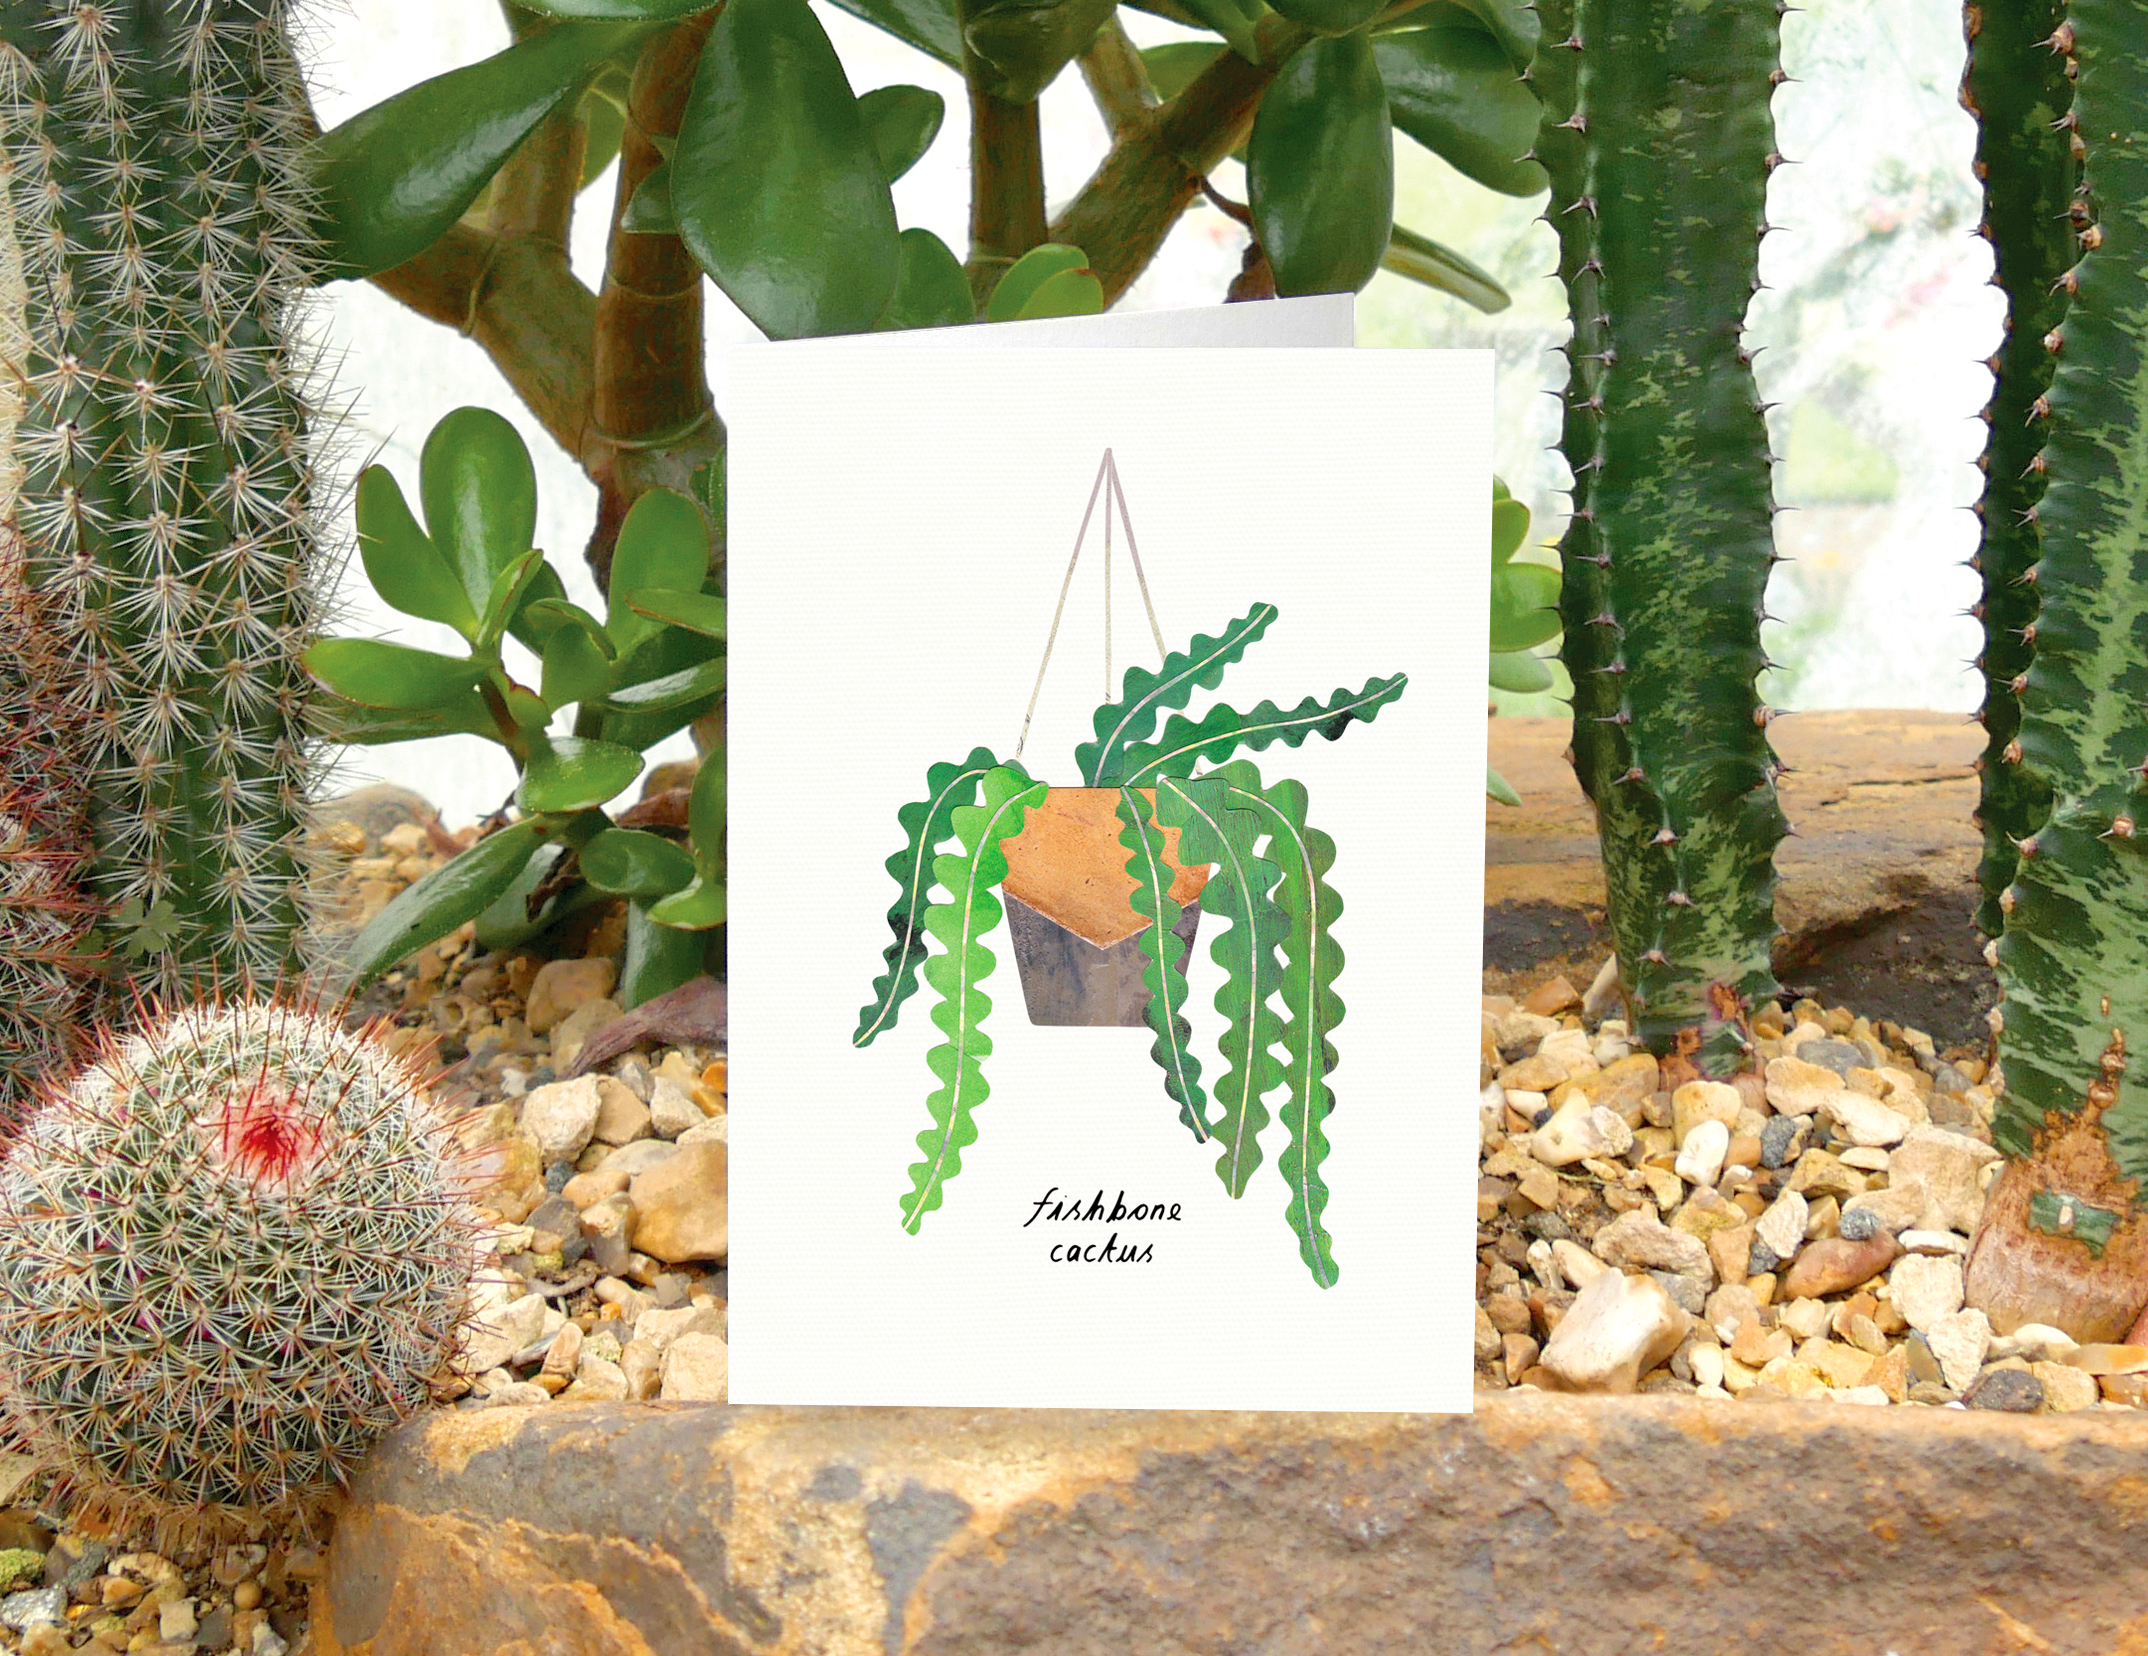 Above: Lianne's current fave pot plant is a Fishbone Cactus.